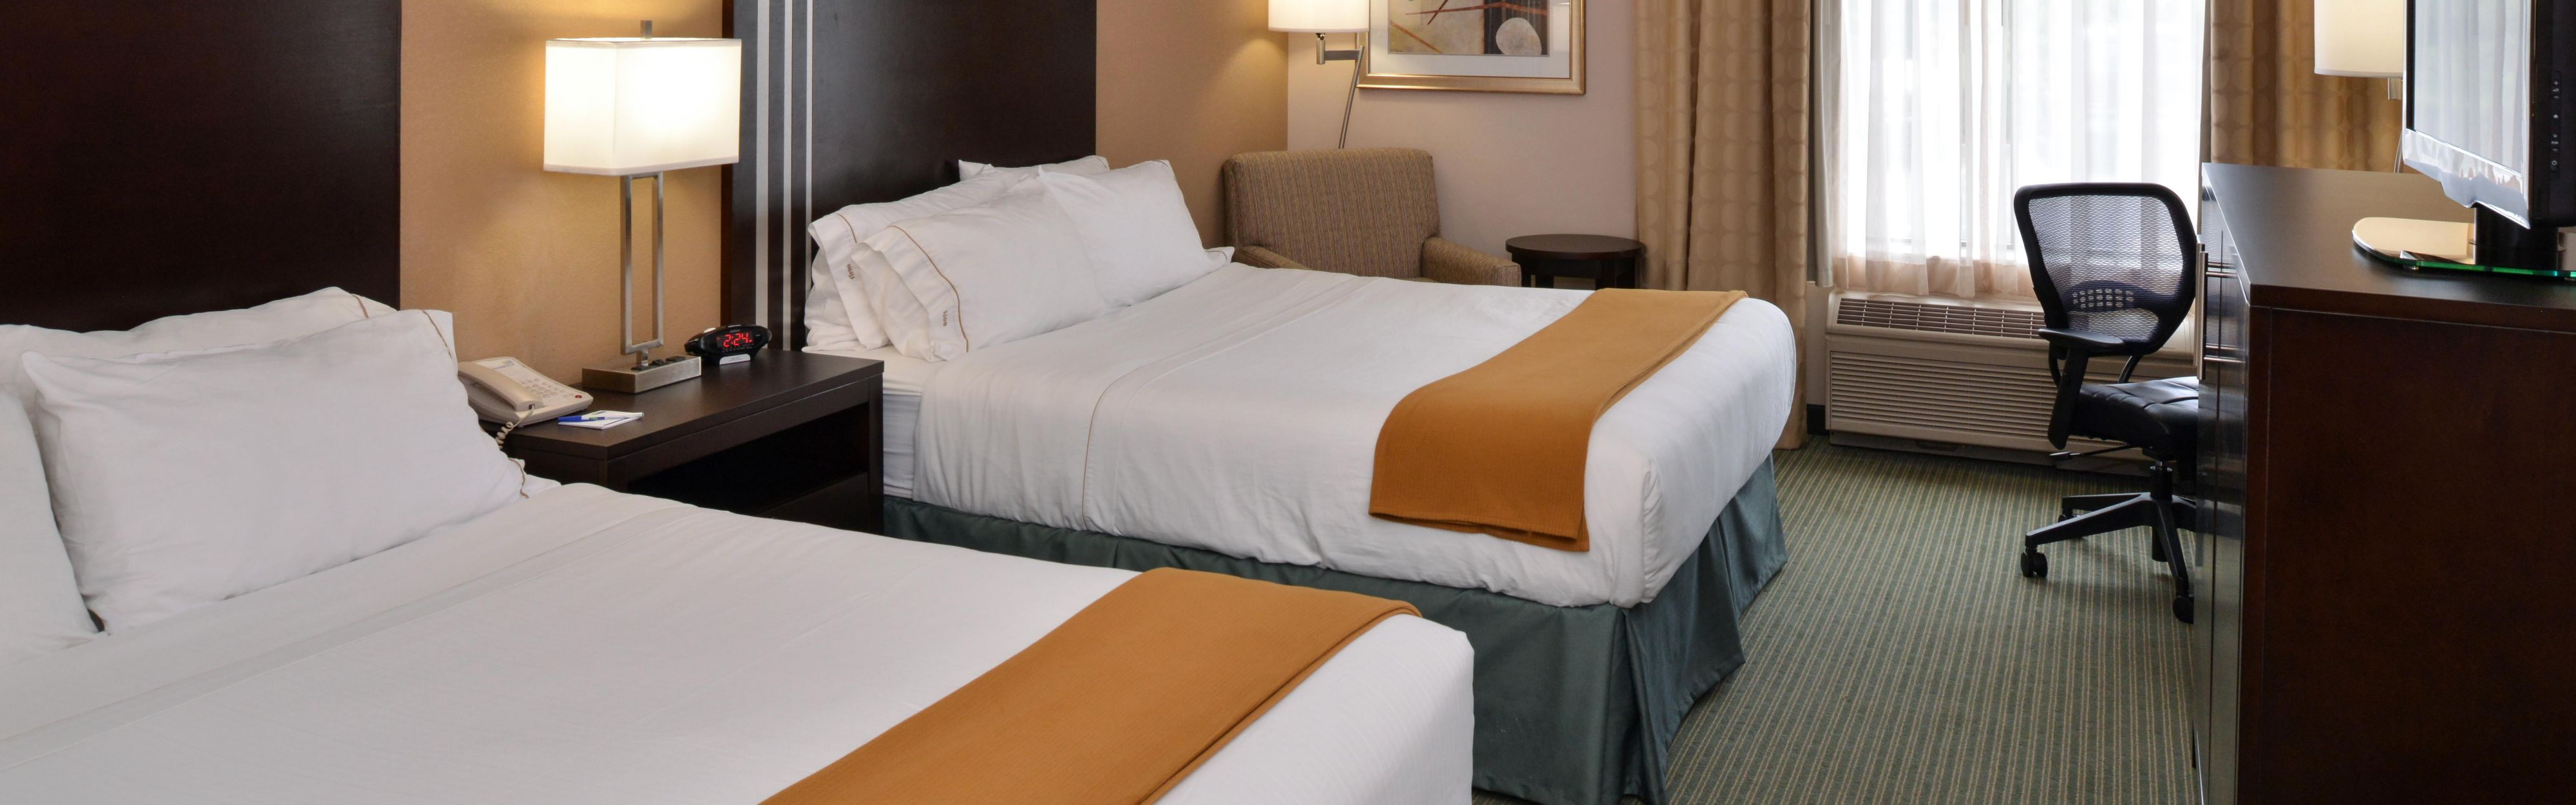 Holiday Inn Express & Suites Milwaukee-New Berlin image 1